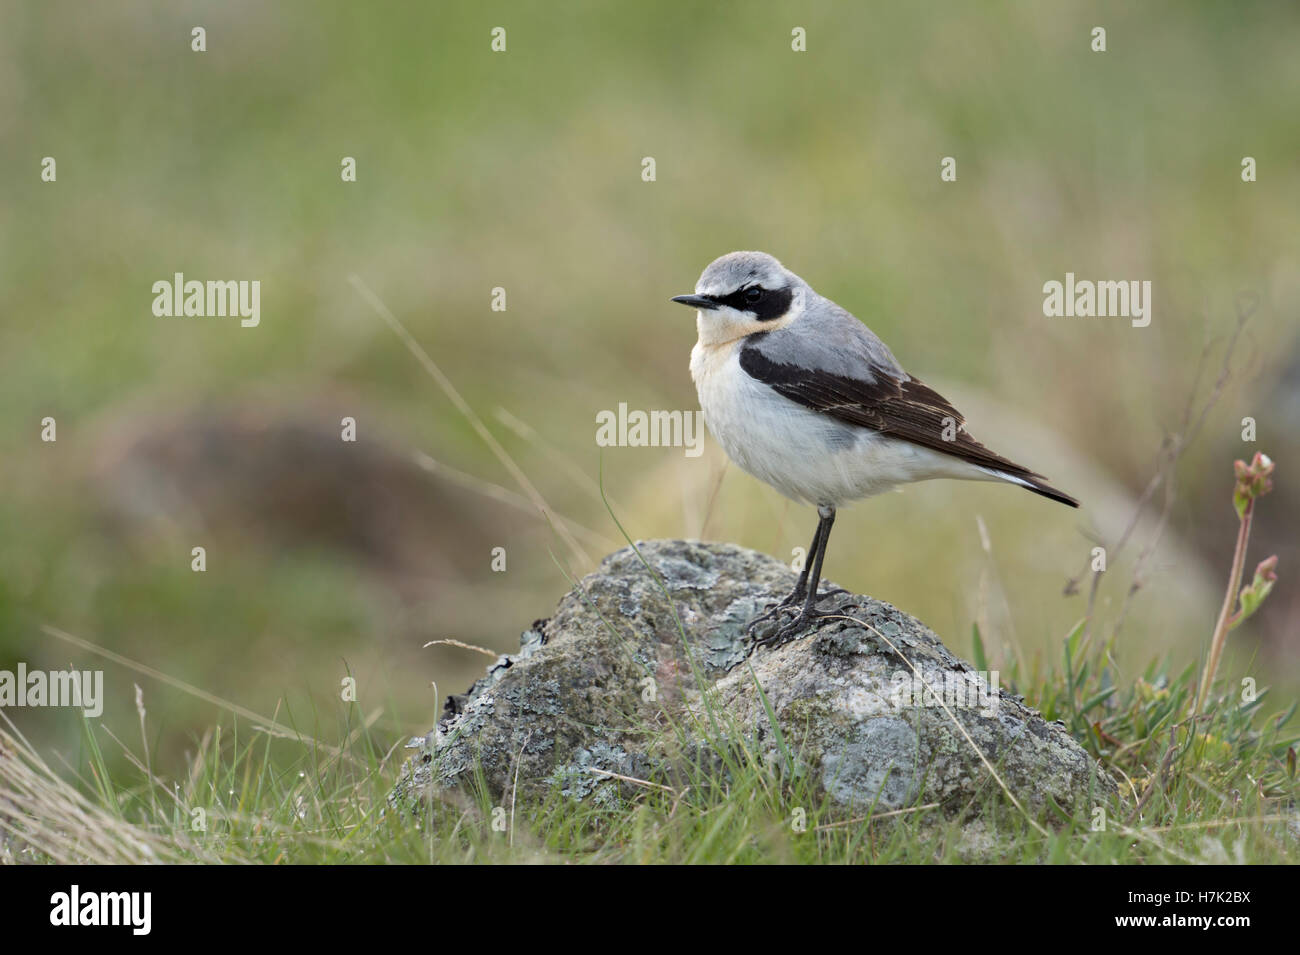 Northern Wheatear ( Oenanthe oenanthe ), male in breeding dress, perched on a rock, in typical surrounding, Europe. Stock Photo